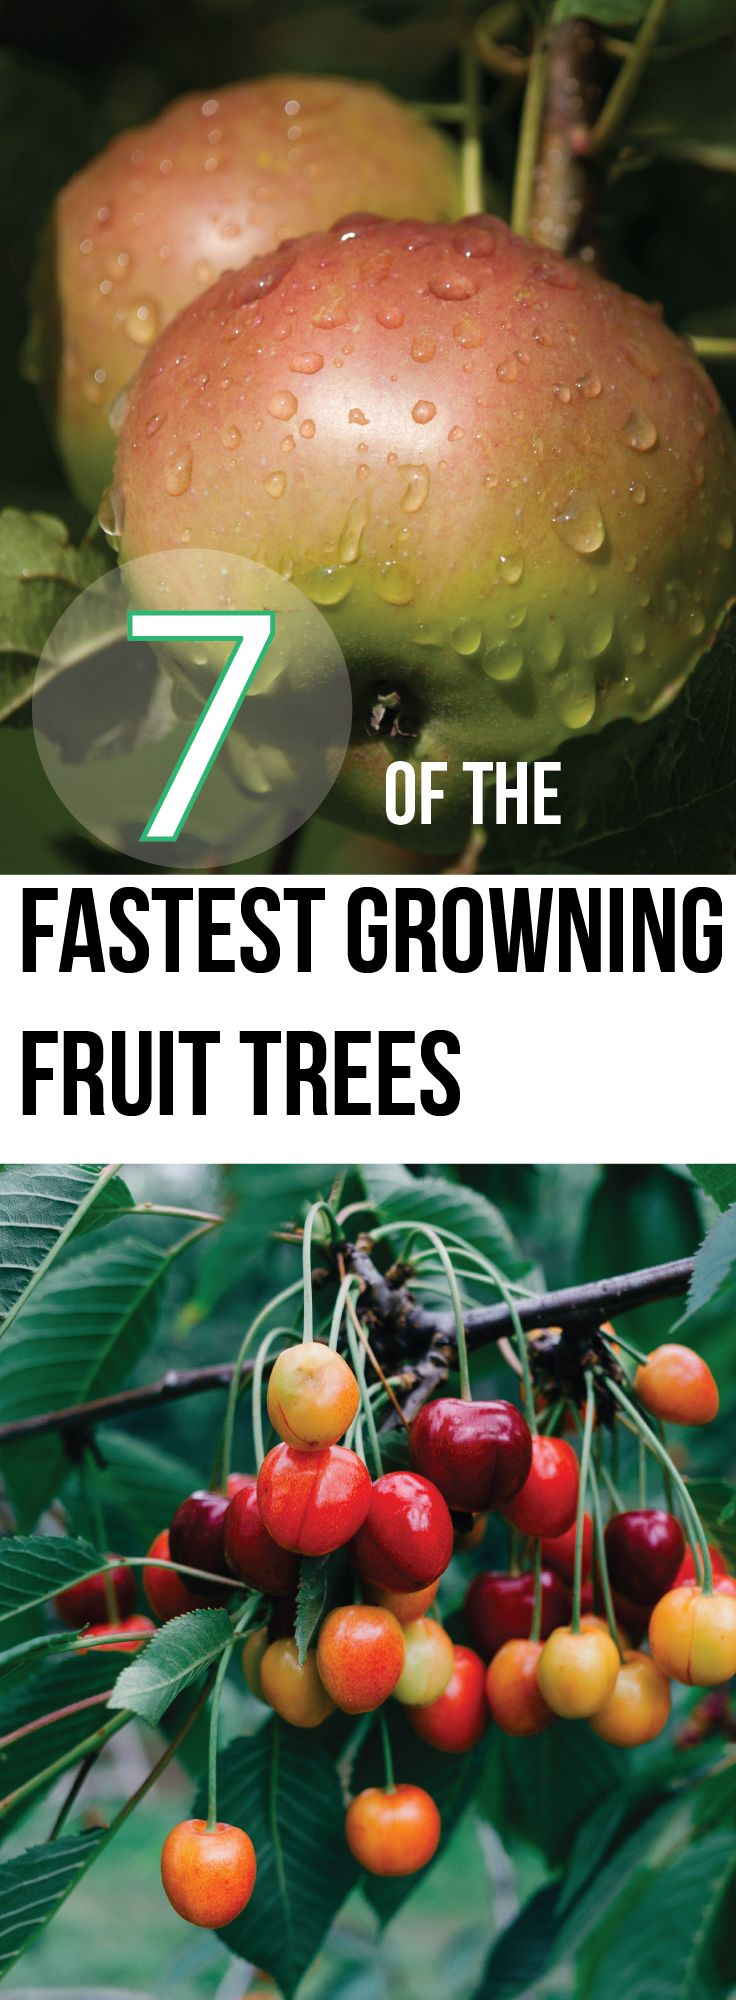 7 Of The Fastest Growing Fruit Trees – Making DIY Fun